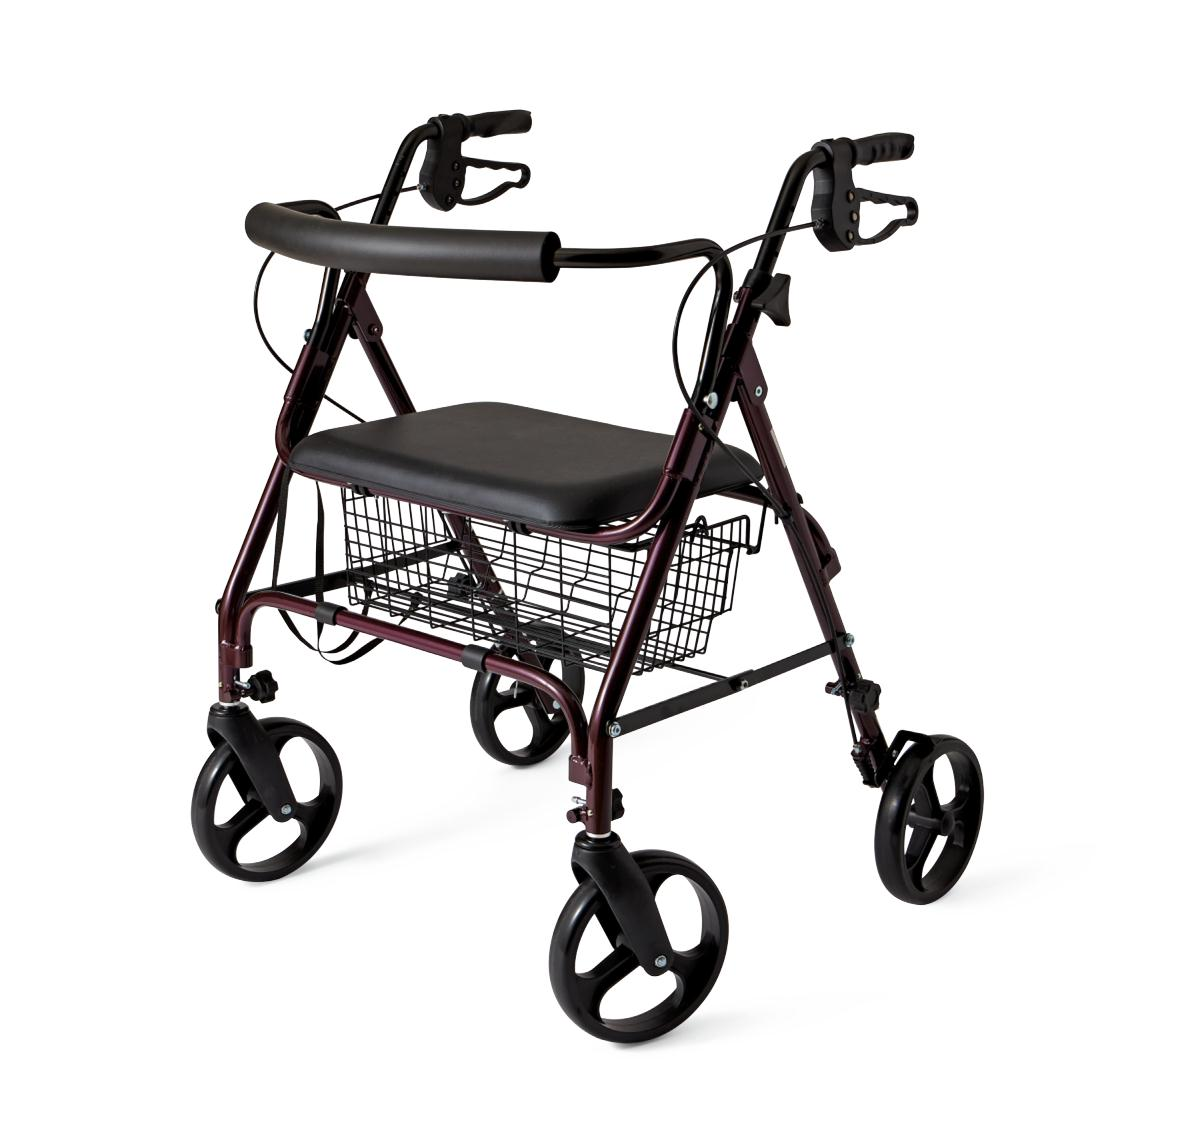 Medline Heavy-Duty, Extra-Wide Rollator Walker